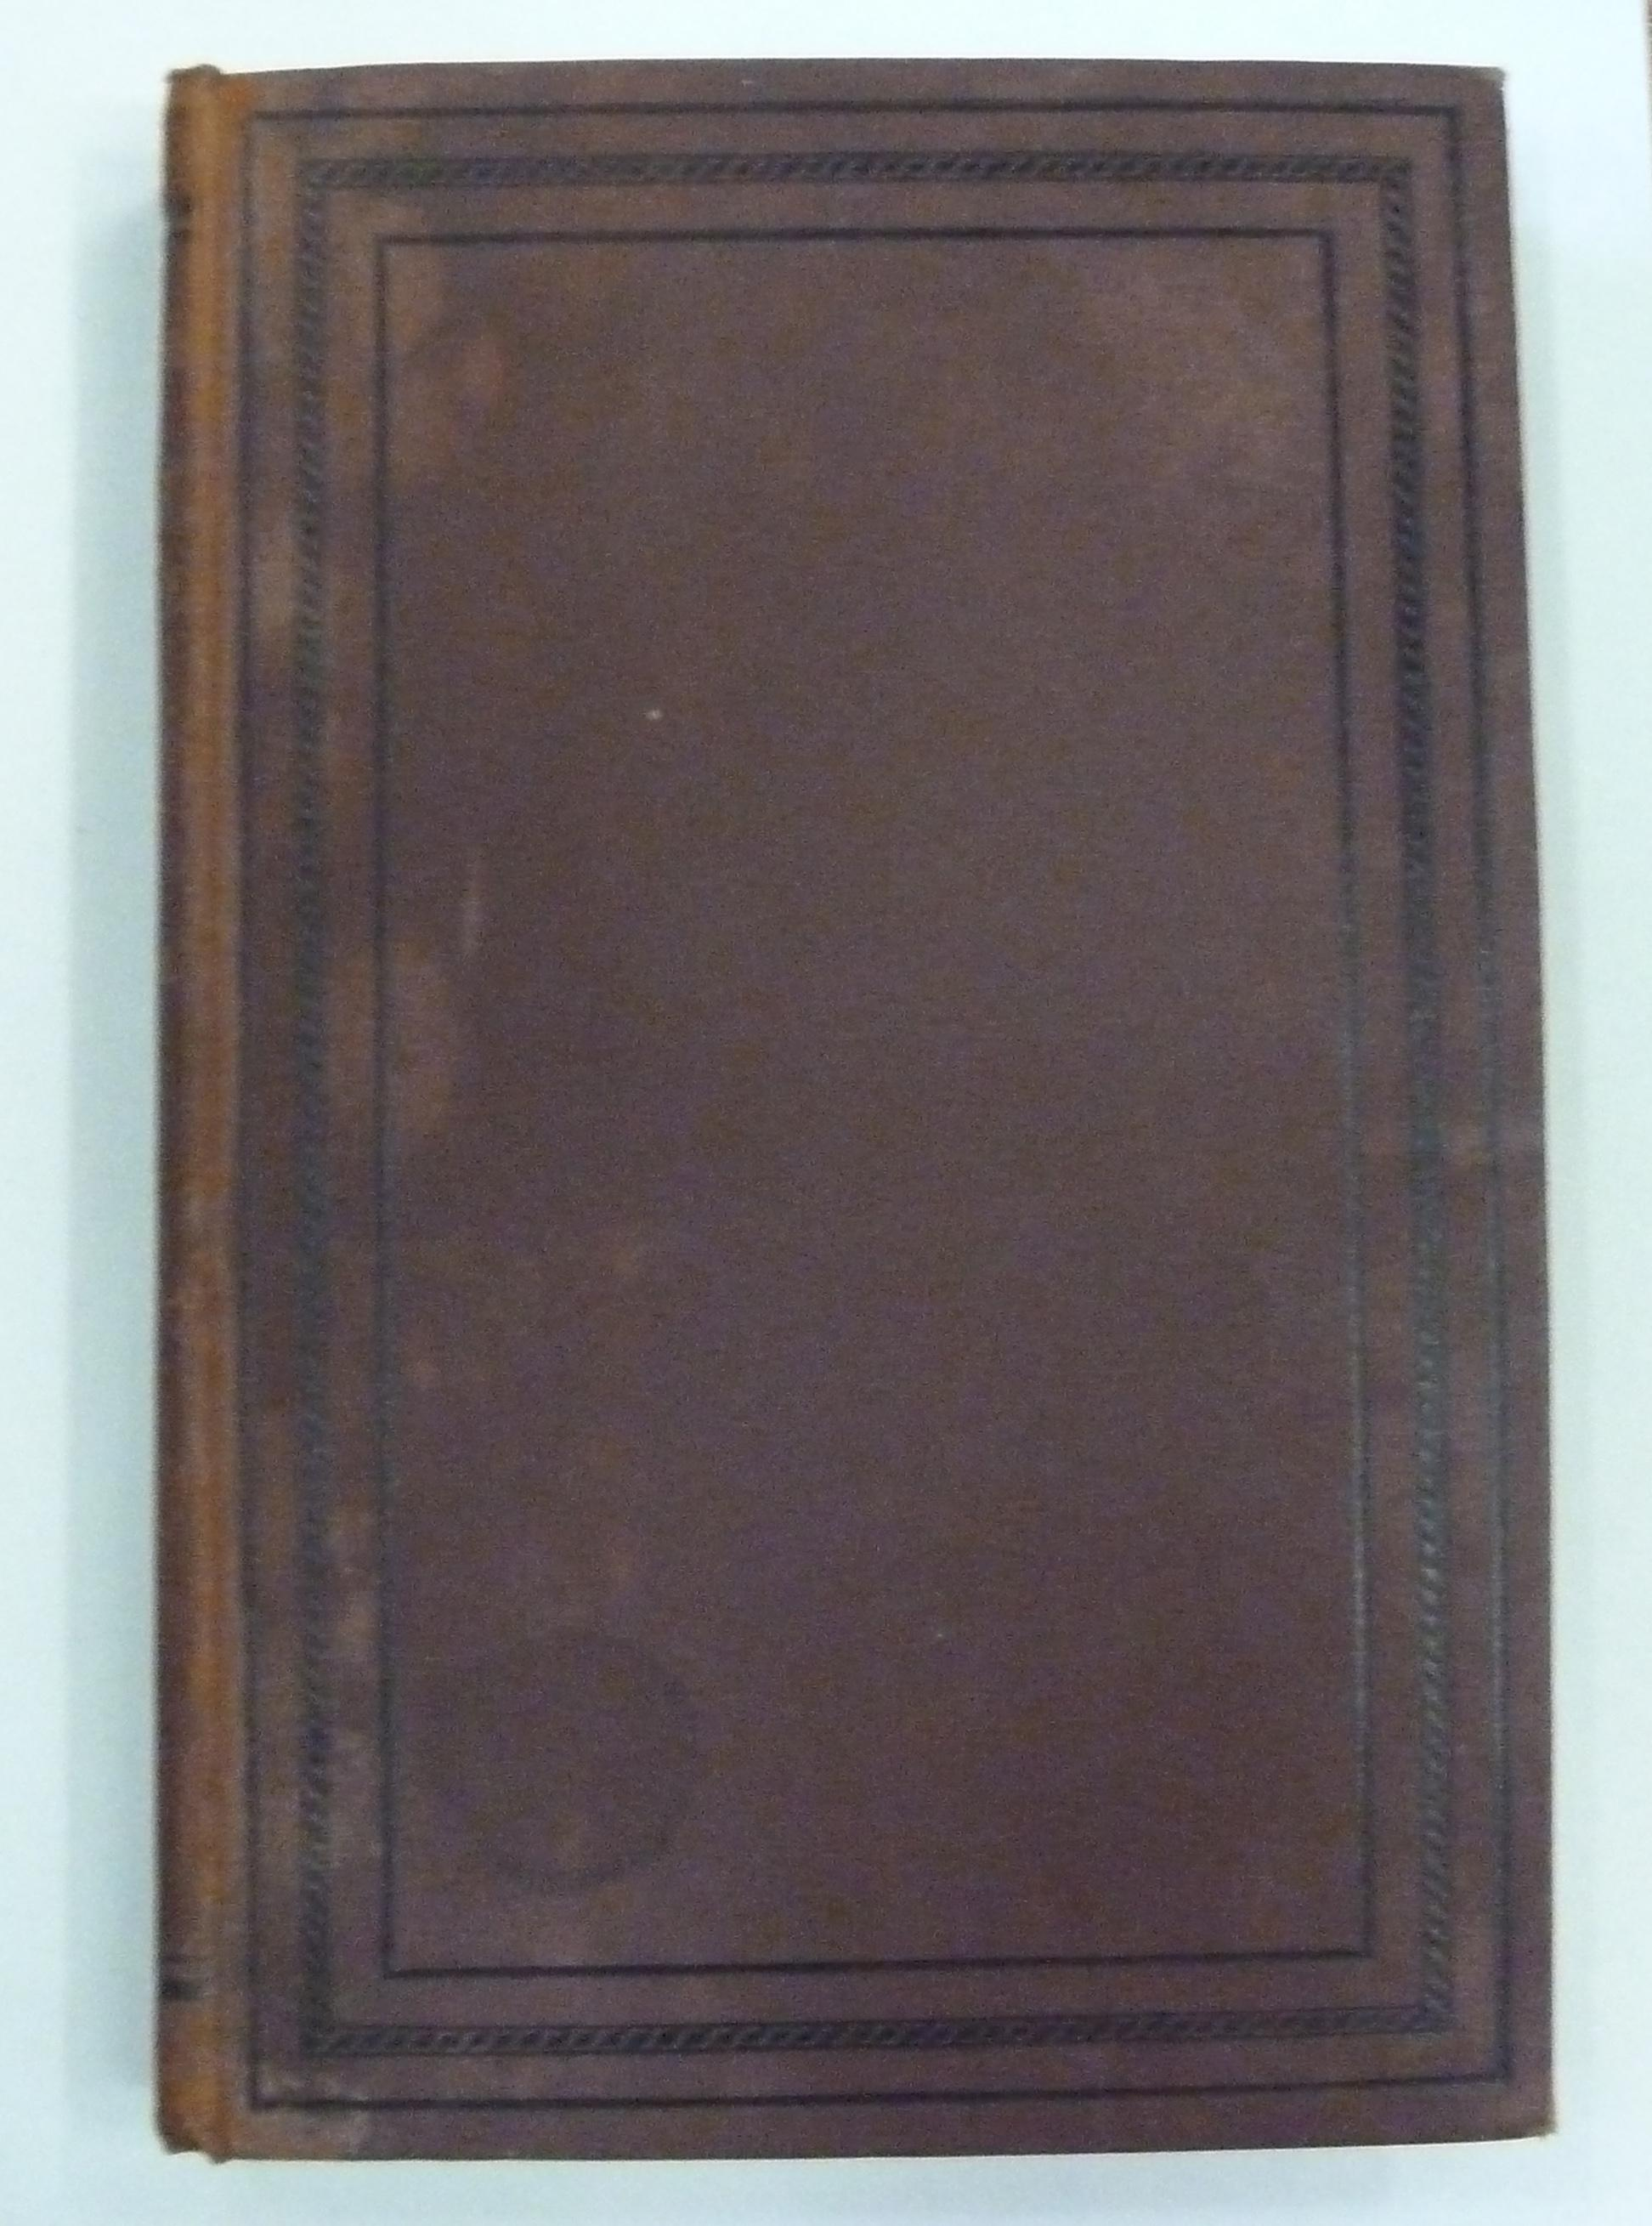 Transactions of The Sanitary Institute Volume X11 1891